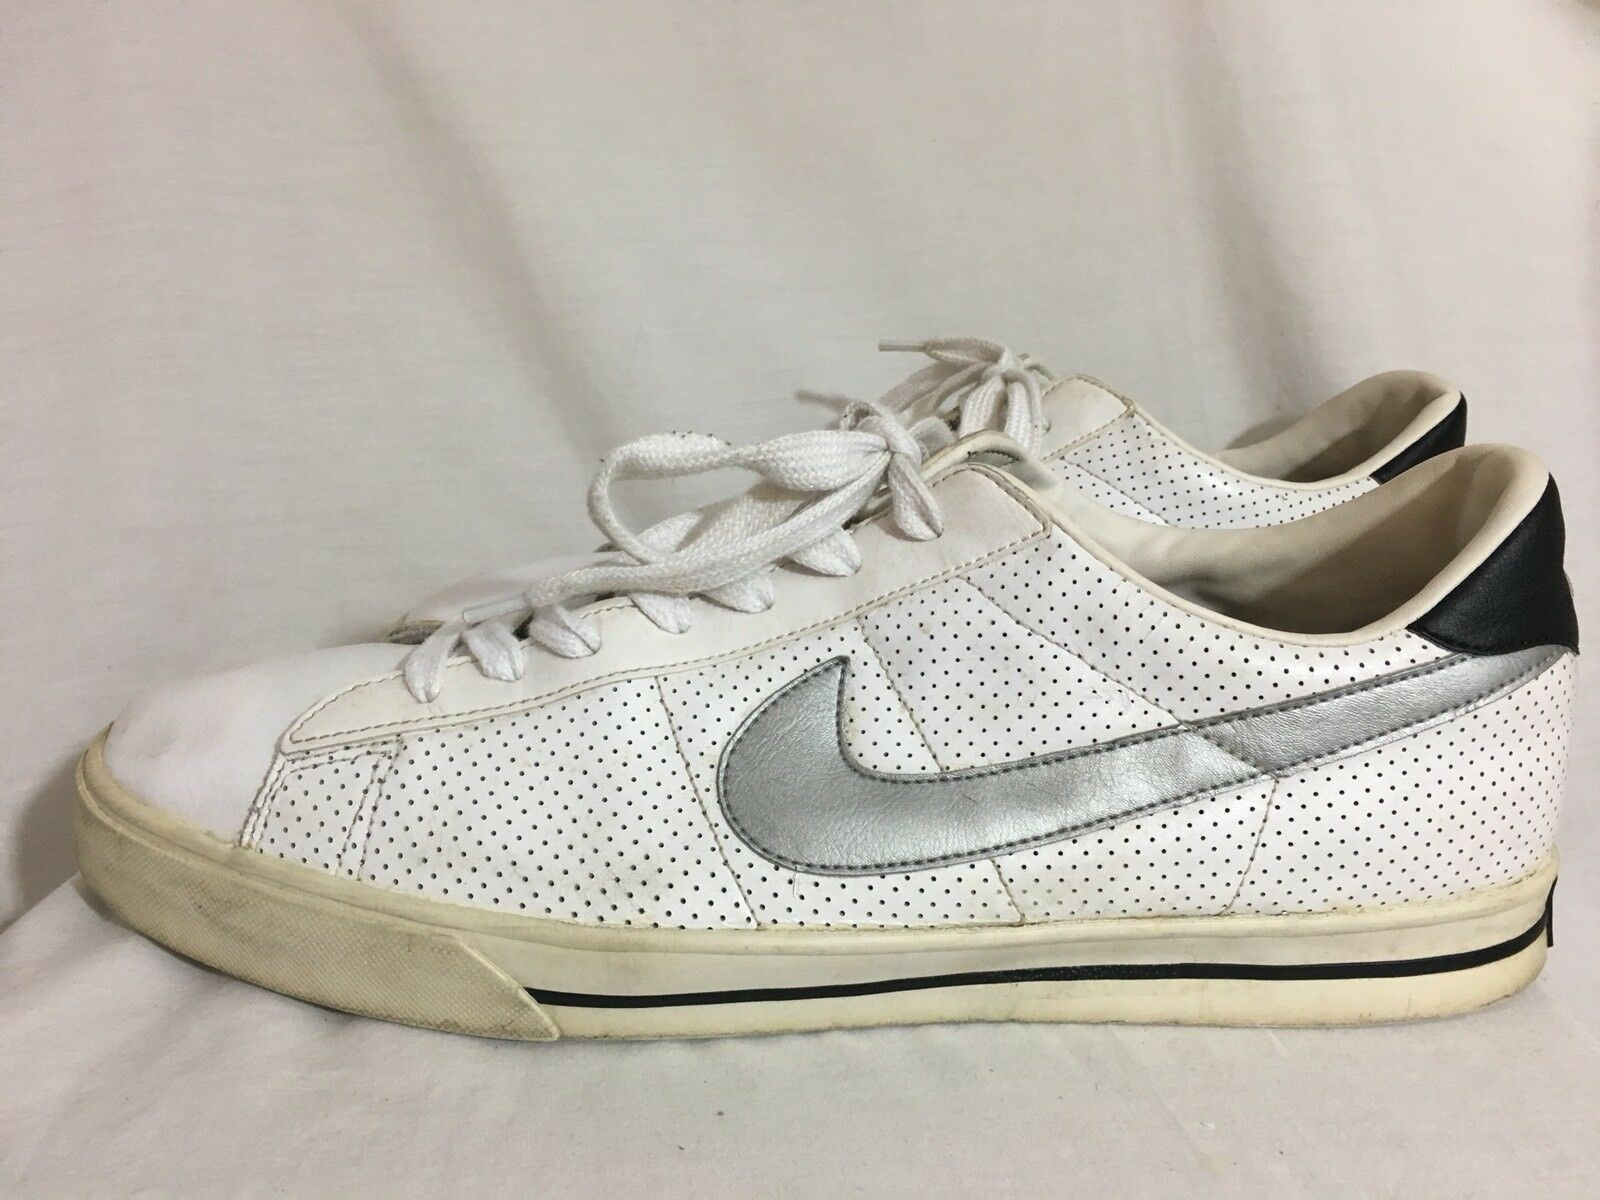 NIKE Leather Classic Tennis Shoes 318333 White W/ Gray Swoosh Lace up Comfortable Cheap women's shoes women's shoes